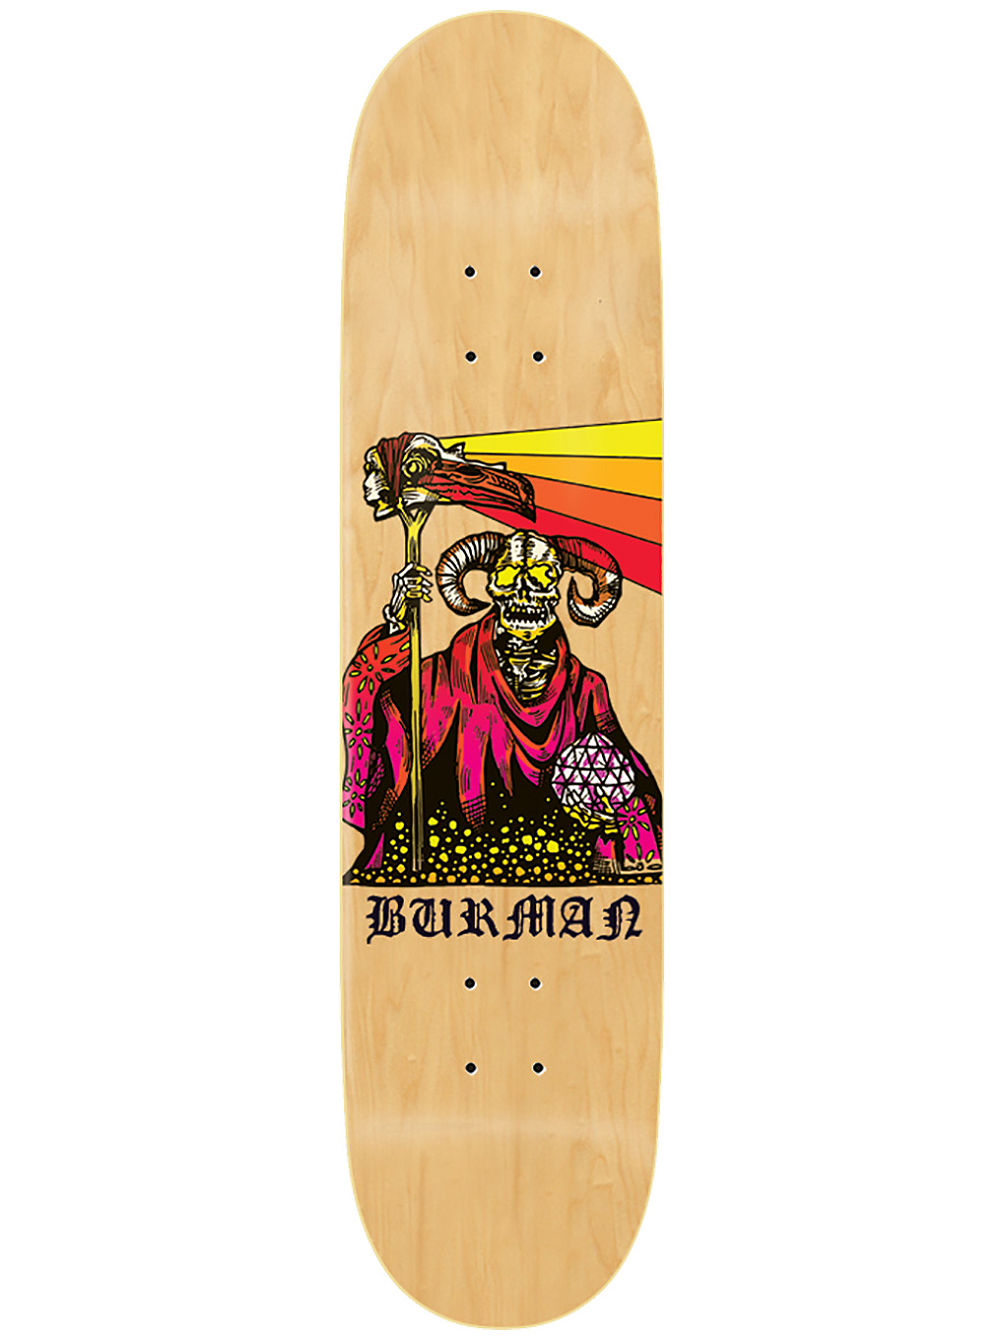 "Burman Boss Dog 8.5"" Skate Deck"